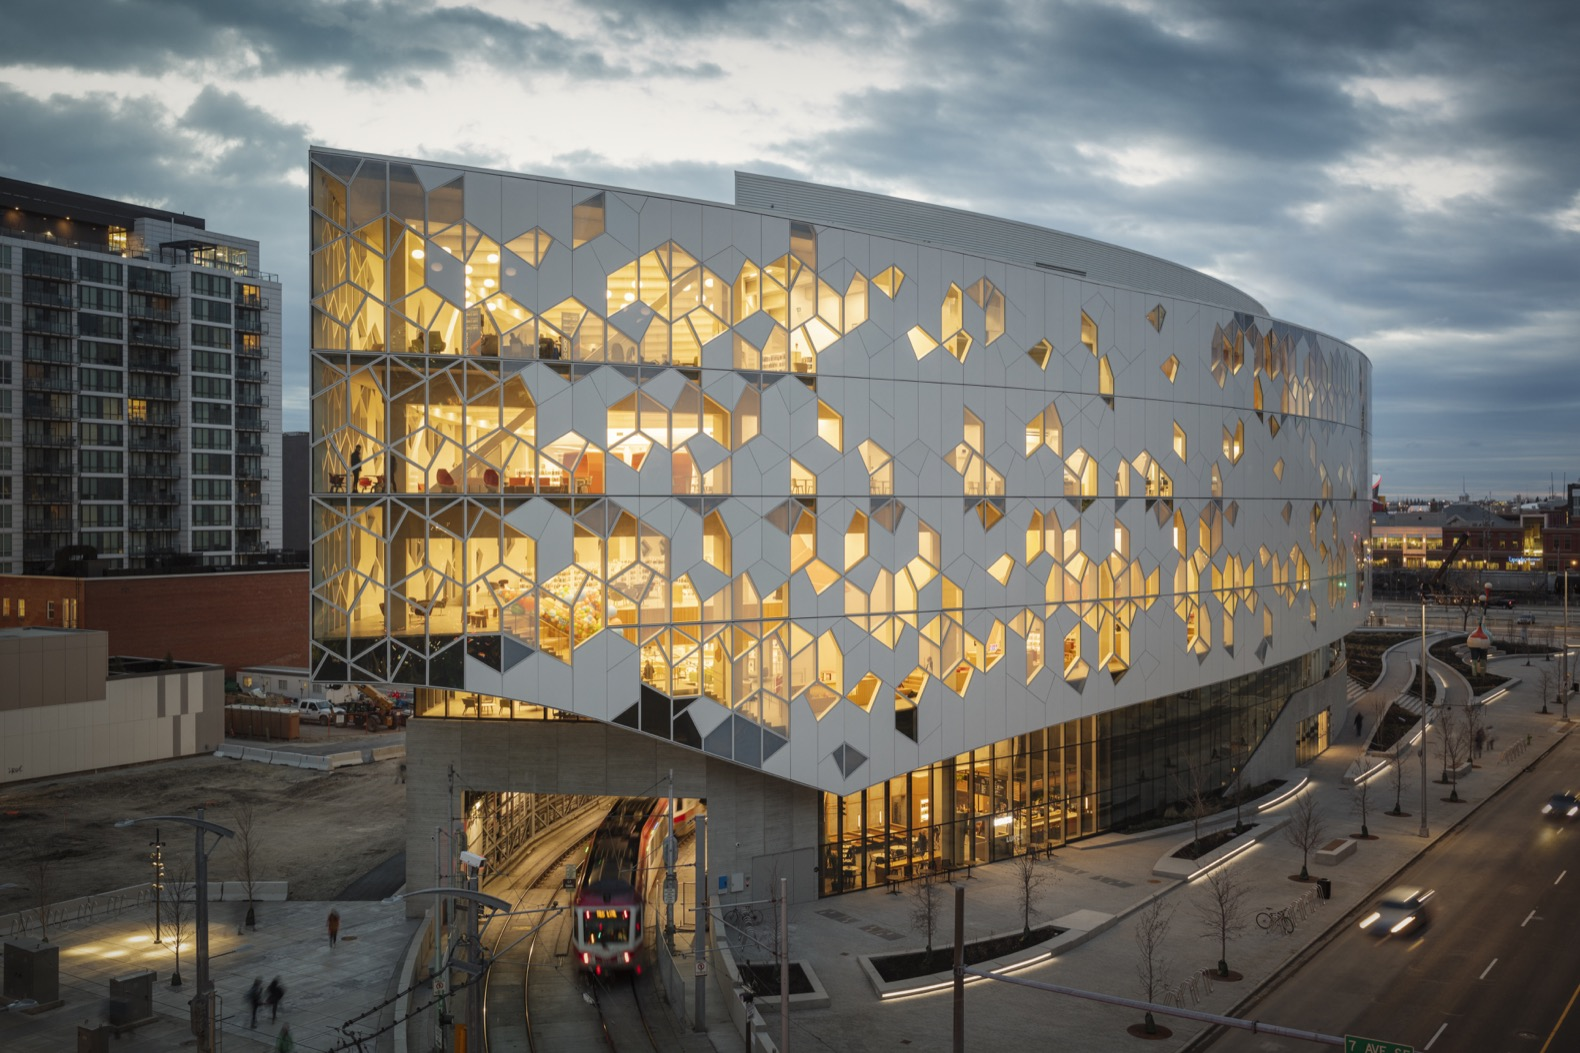 Calgary Central Library is wrapped in a striking, snowflake-like facade